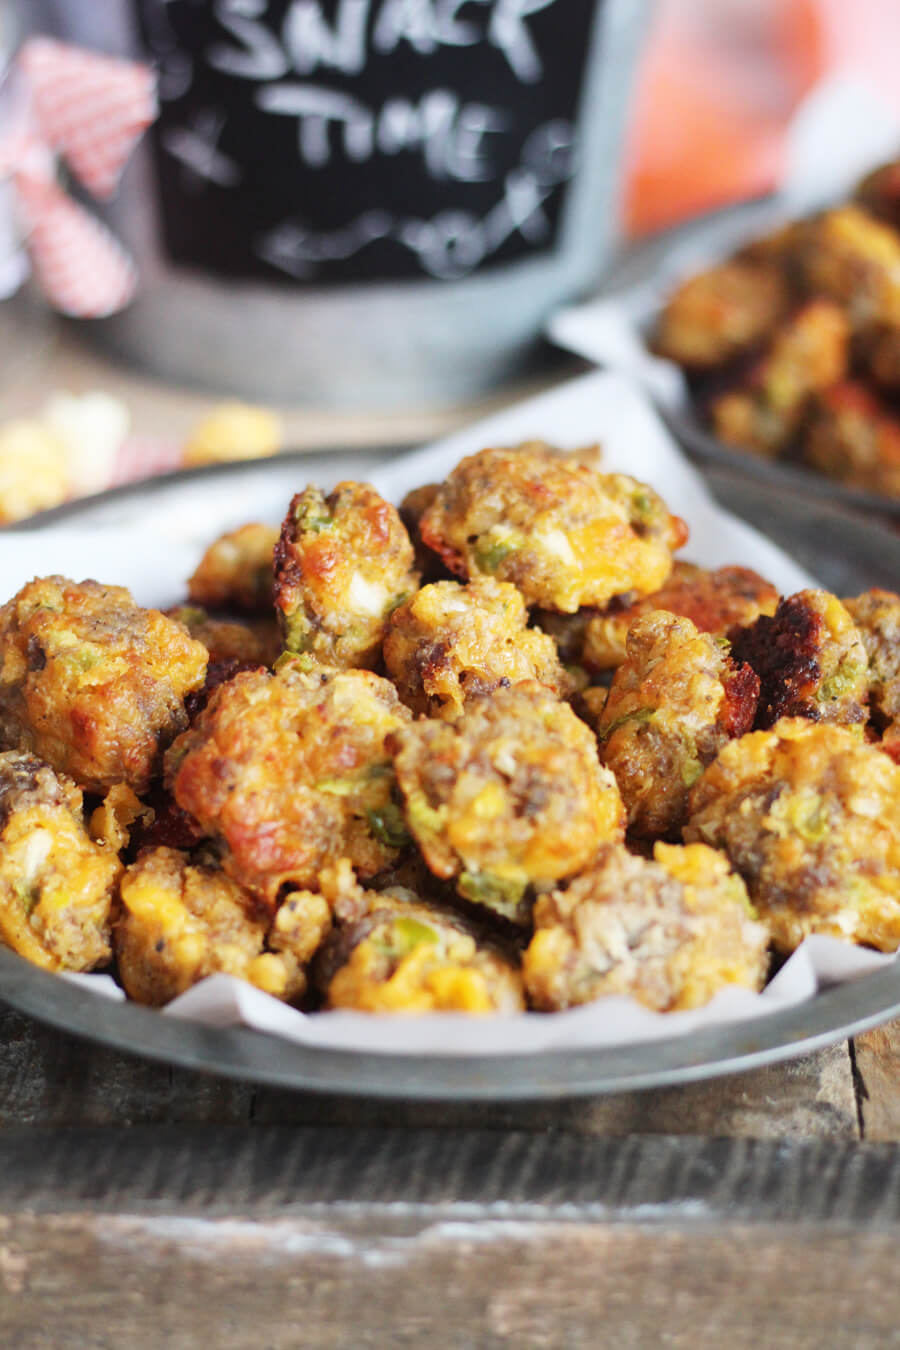 Savory and spicy, this sausage ball recipe will be YOUR new favorite and a hit at all of your parties.